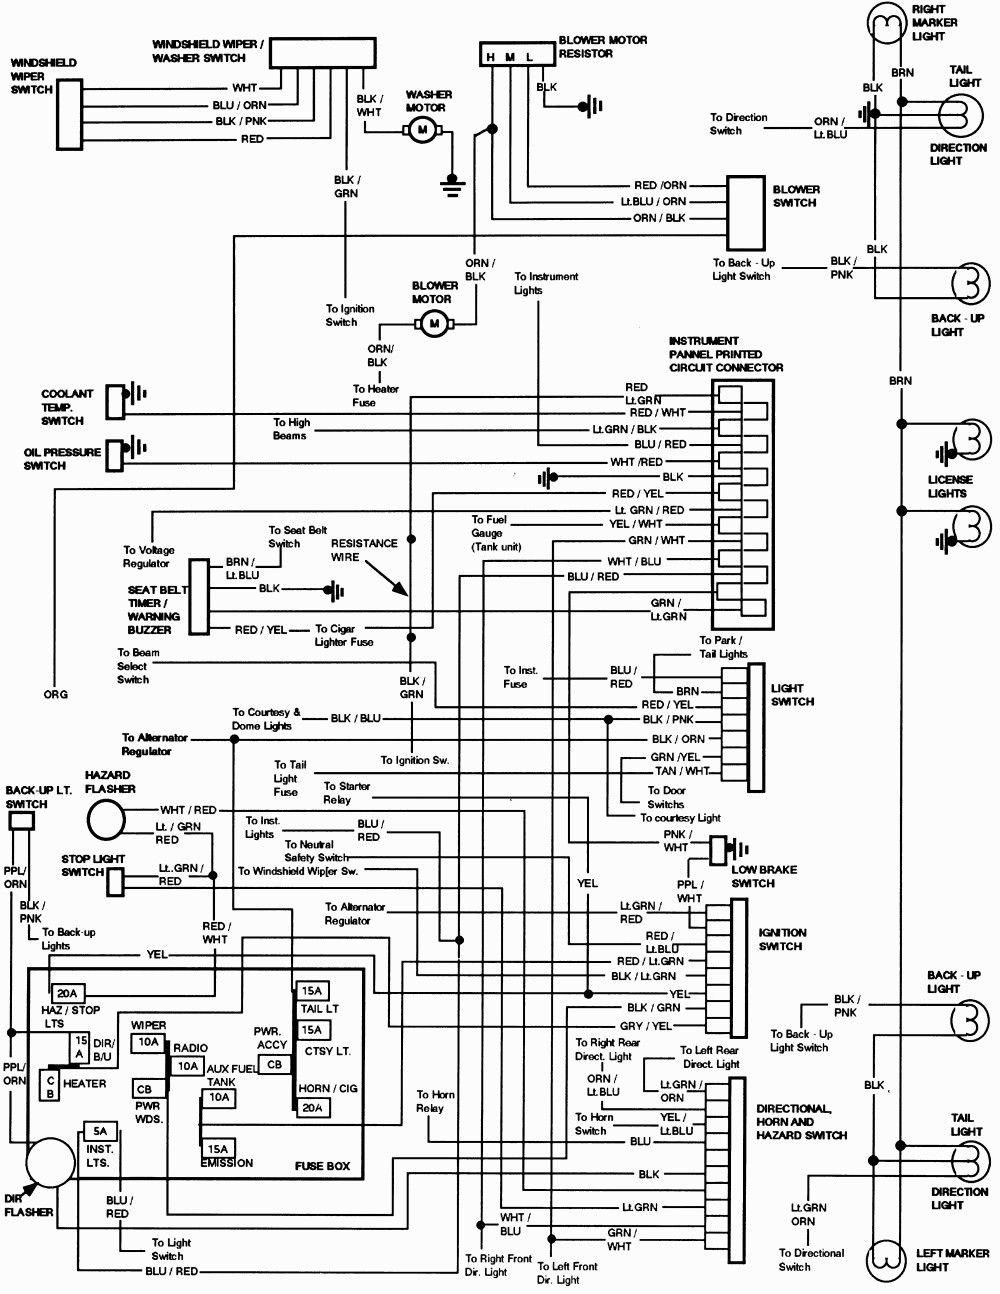 96 F150 Wiring Diagram - Wiring Diagram K3 F Stereo Wiring Diagram on